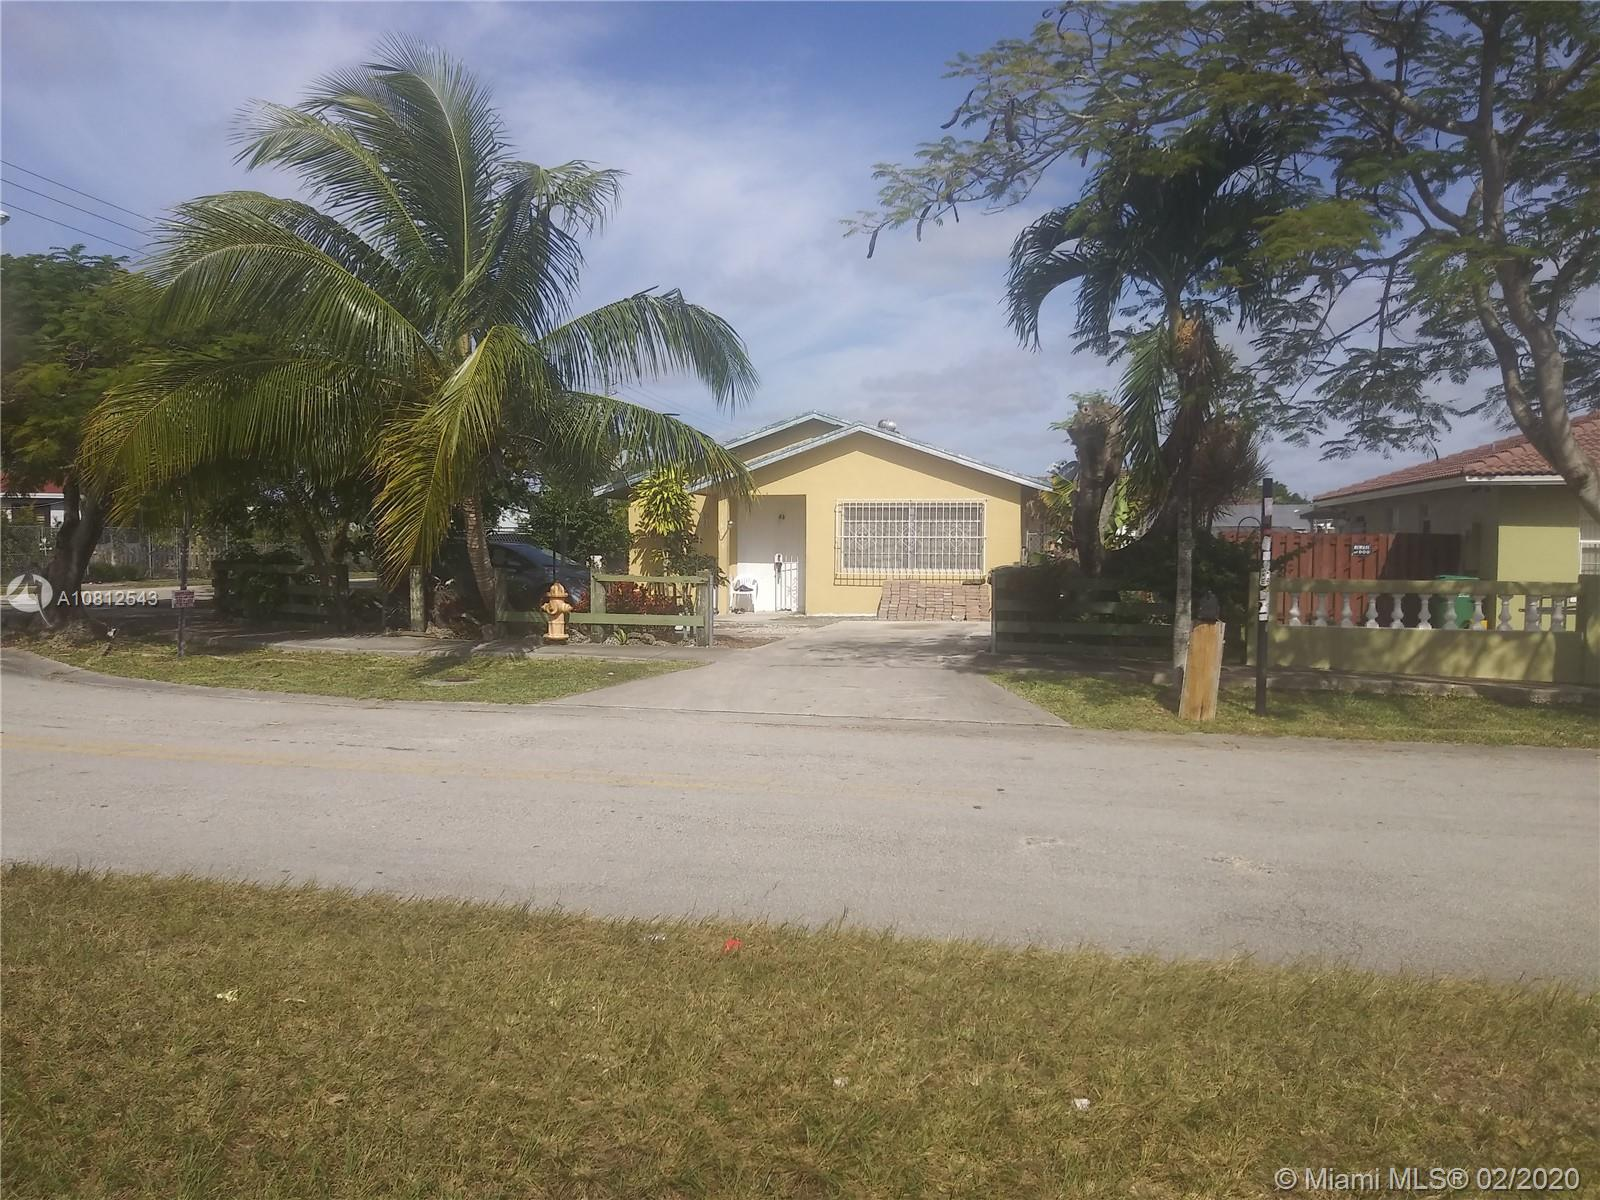 16277 SW 306th St, Homestead, FL 33033 - Homestead, FL real estate listing